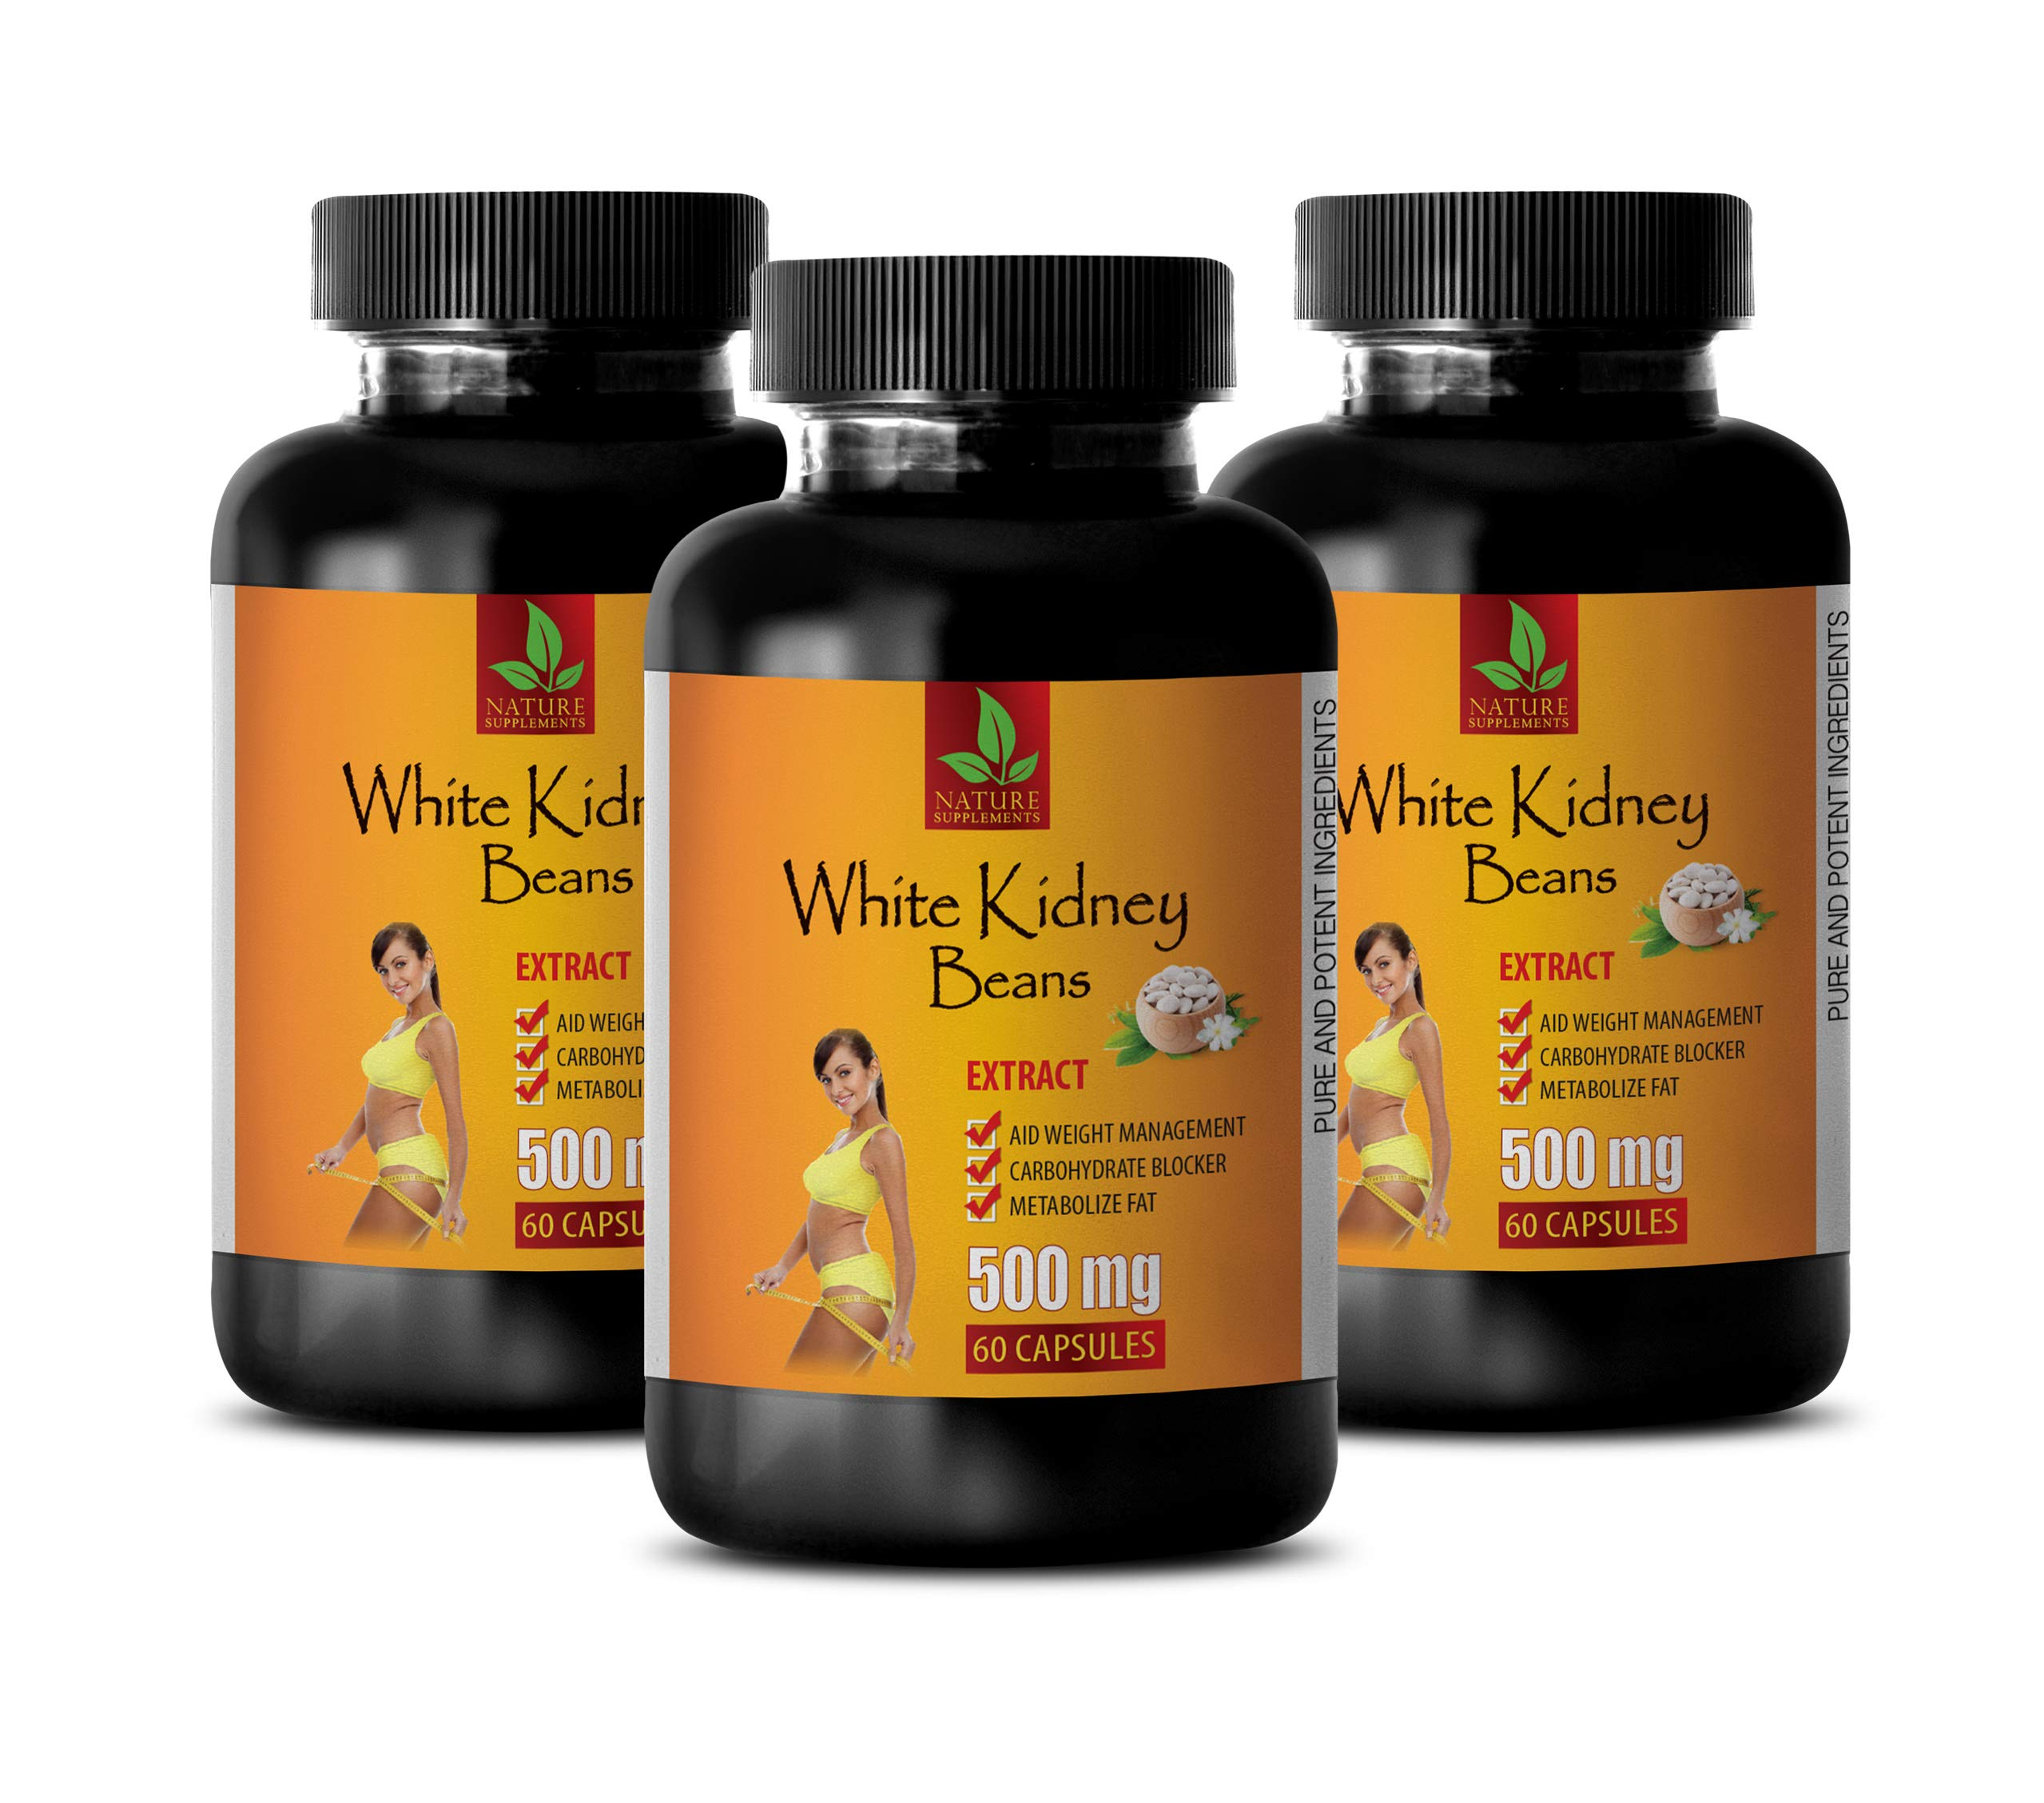 carb Blocker Slim Fast - White Kidney Beans Extract 500MG - Pure and Potent Ingredients - Weight Loss Appetite suppressant Pills - 3 Bottles (180 Capsules) by NATURE SUPPLEMENTS